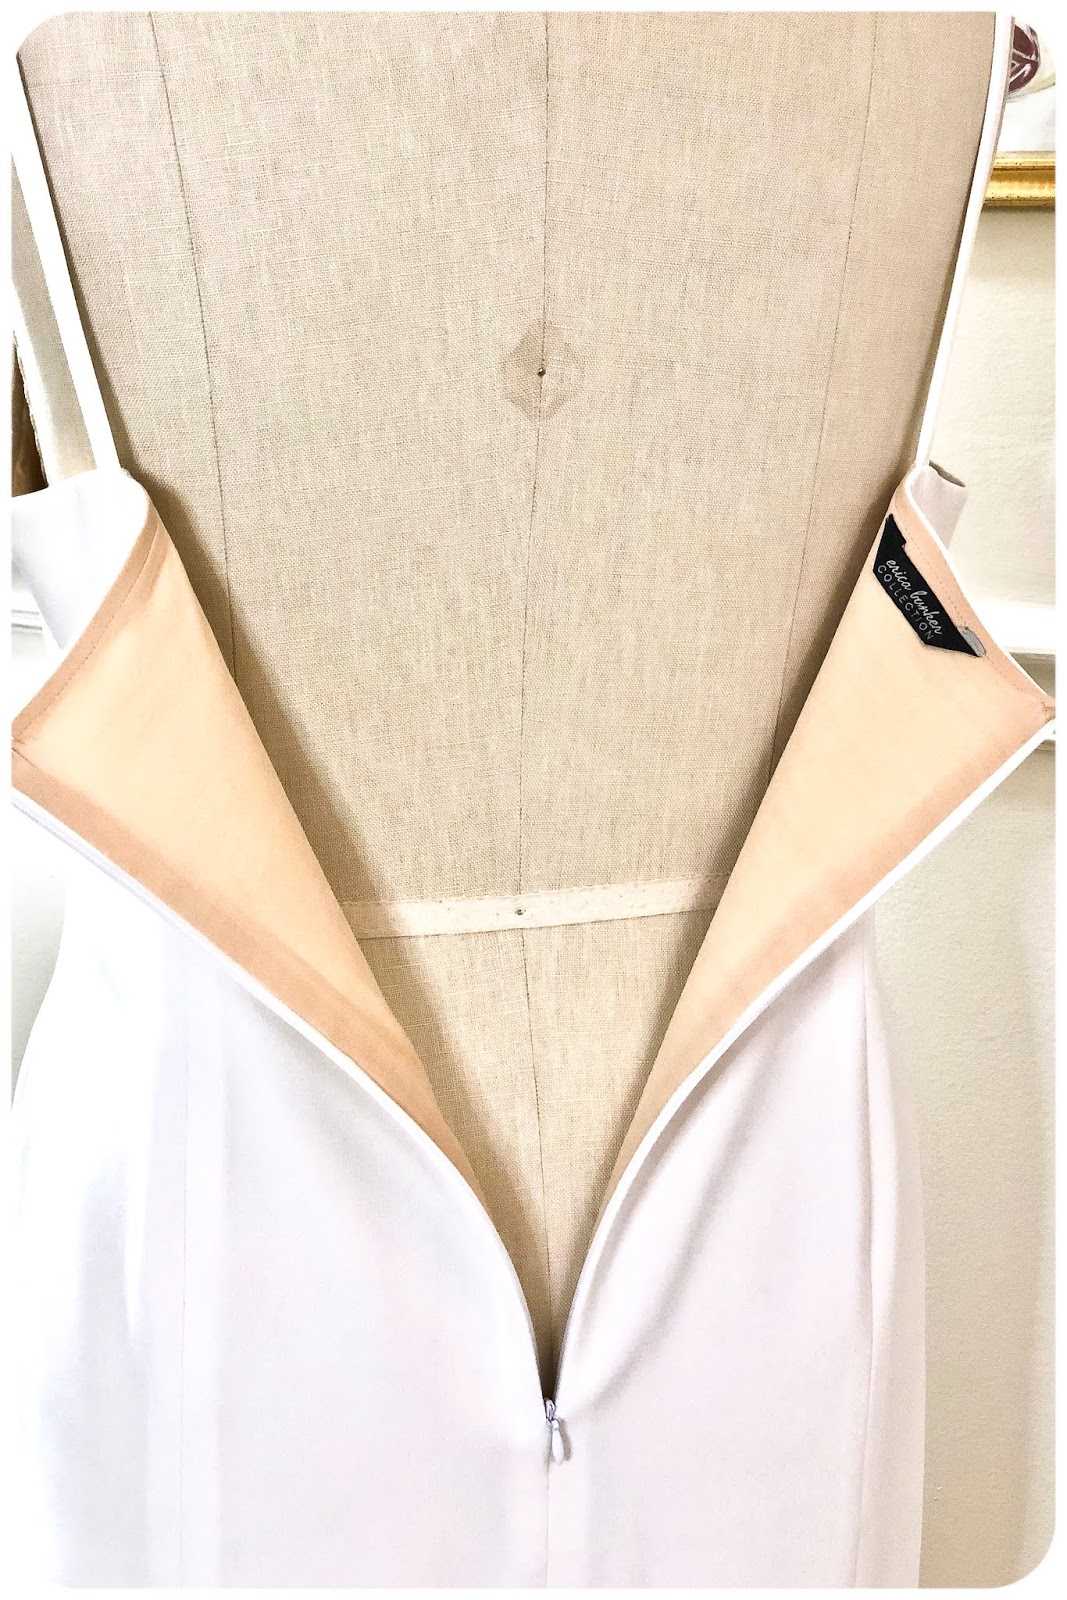 DIY White Bow Dress Zipper Detail - Erica Bunker DIY Style!